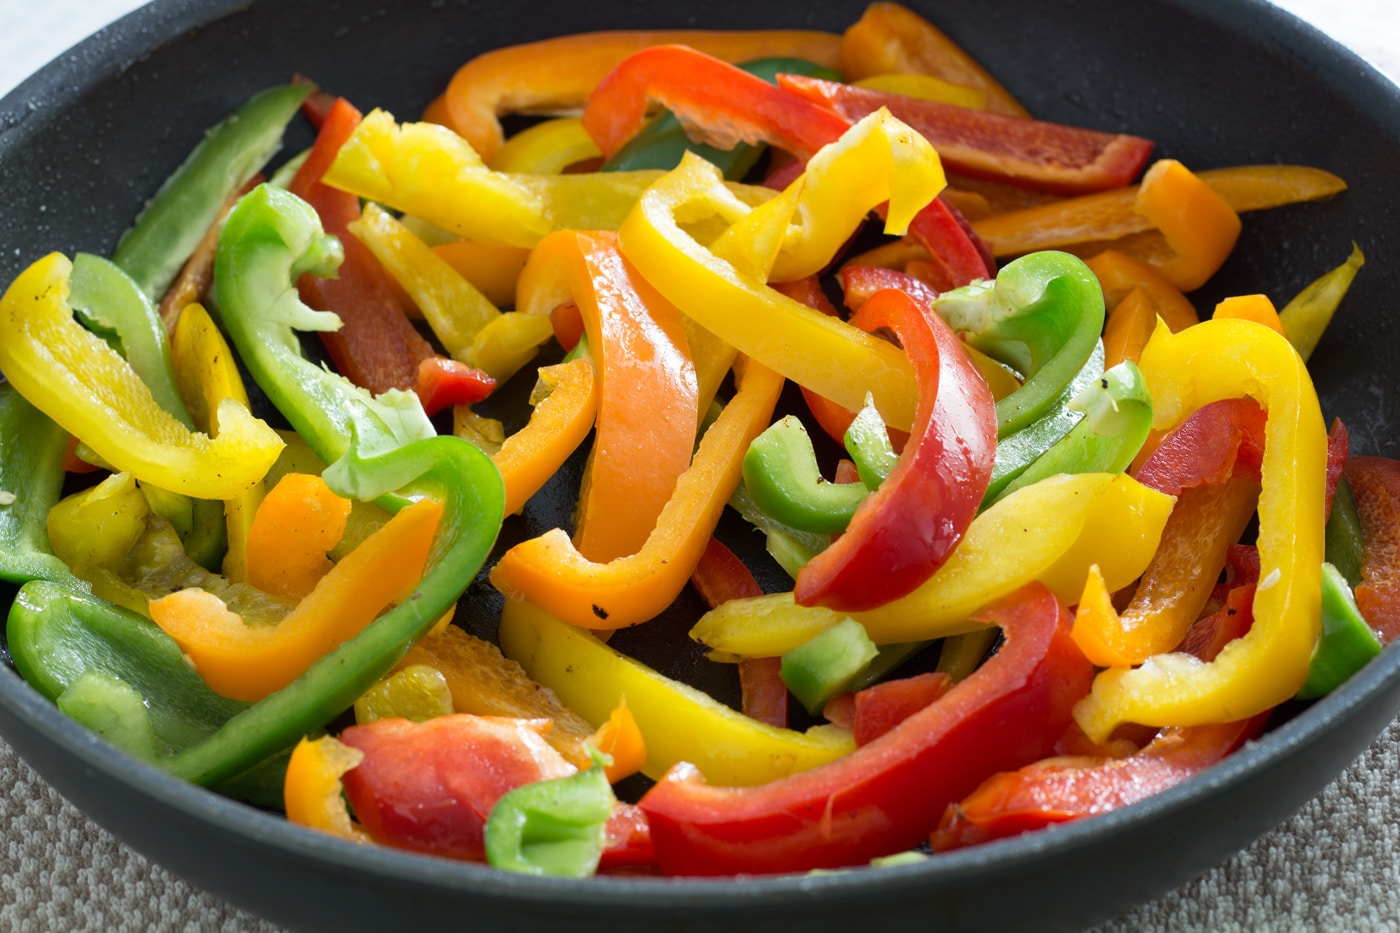 Sliced green, red, orange, and yellow peppers in a black pan